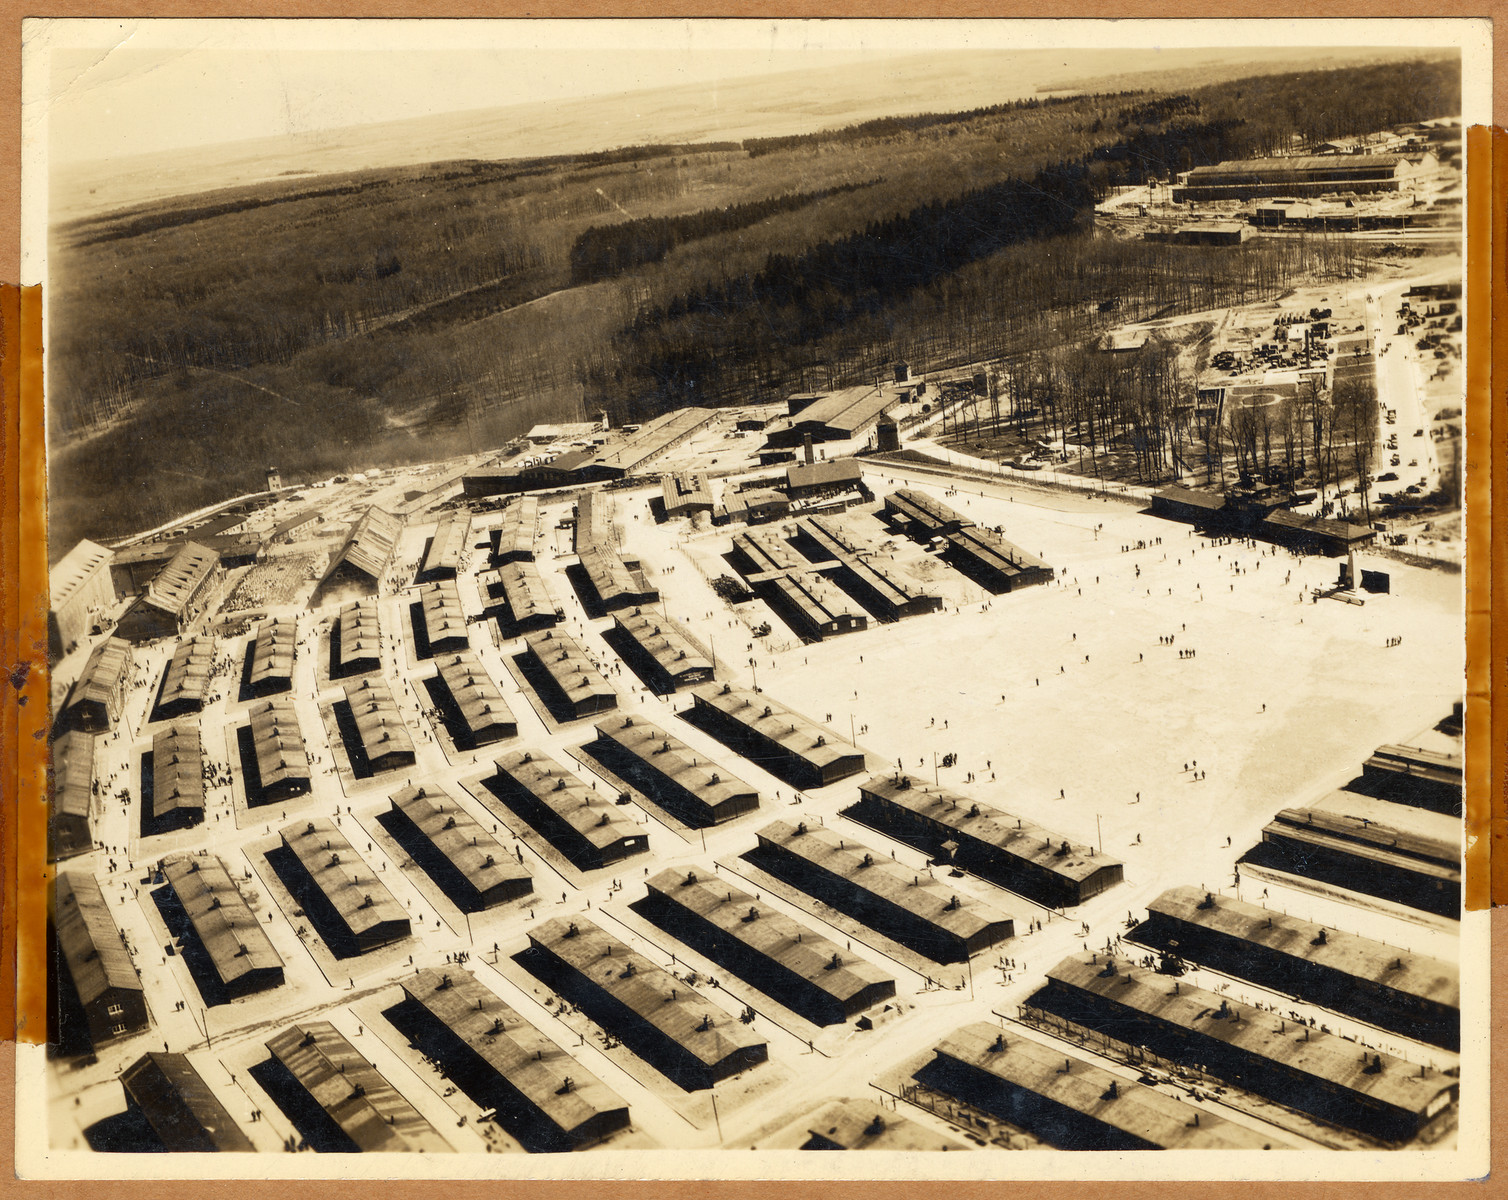 """Postwar aerial view of Buchenwald concentration camps, showing the barracks.  The lender's handwritten caption reads, """"Air photo of concentration camp Buchenwald.   1.  Right-extreme and center monument to 51,000 persons who died there. 2.  Center with smoke stack torture chamber and mortuary."""""""